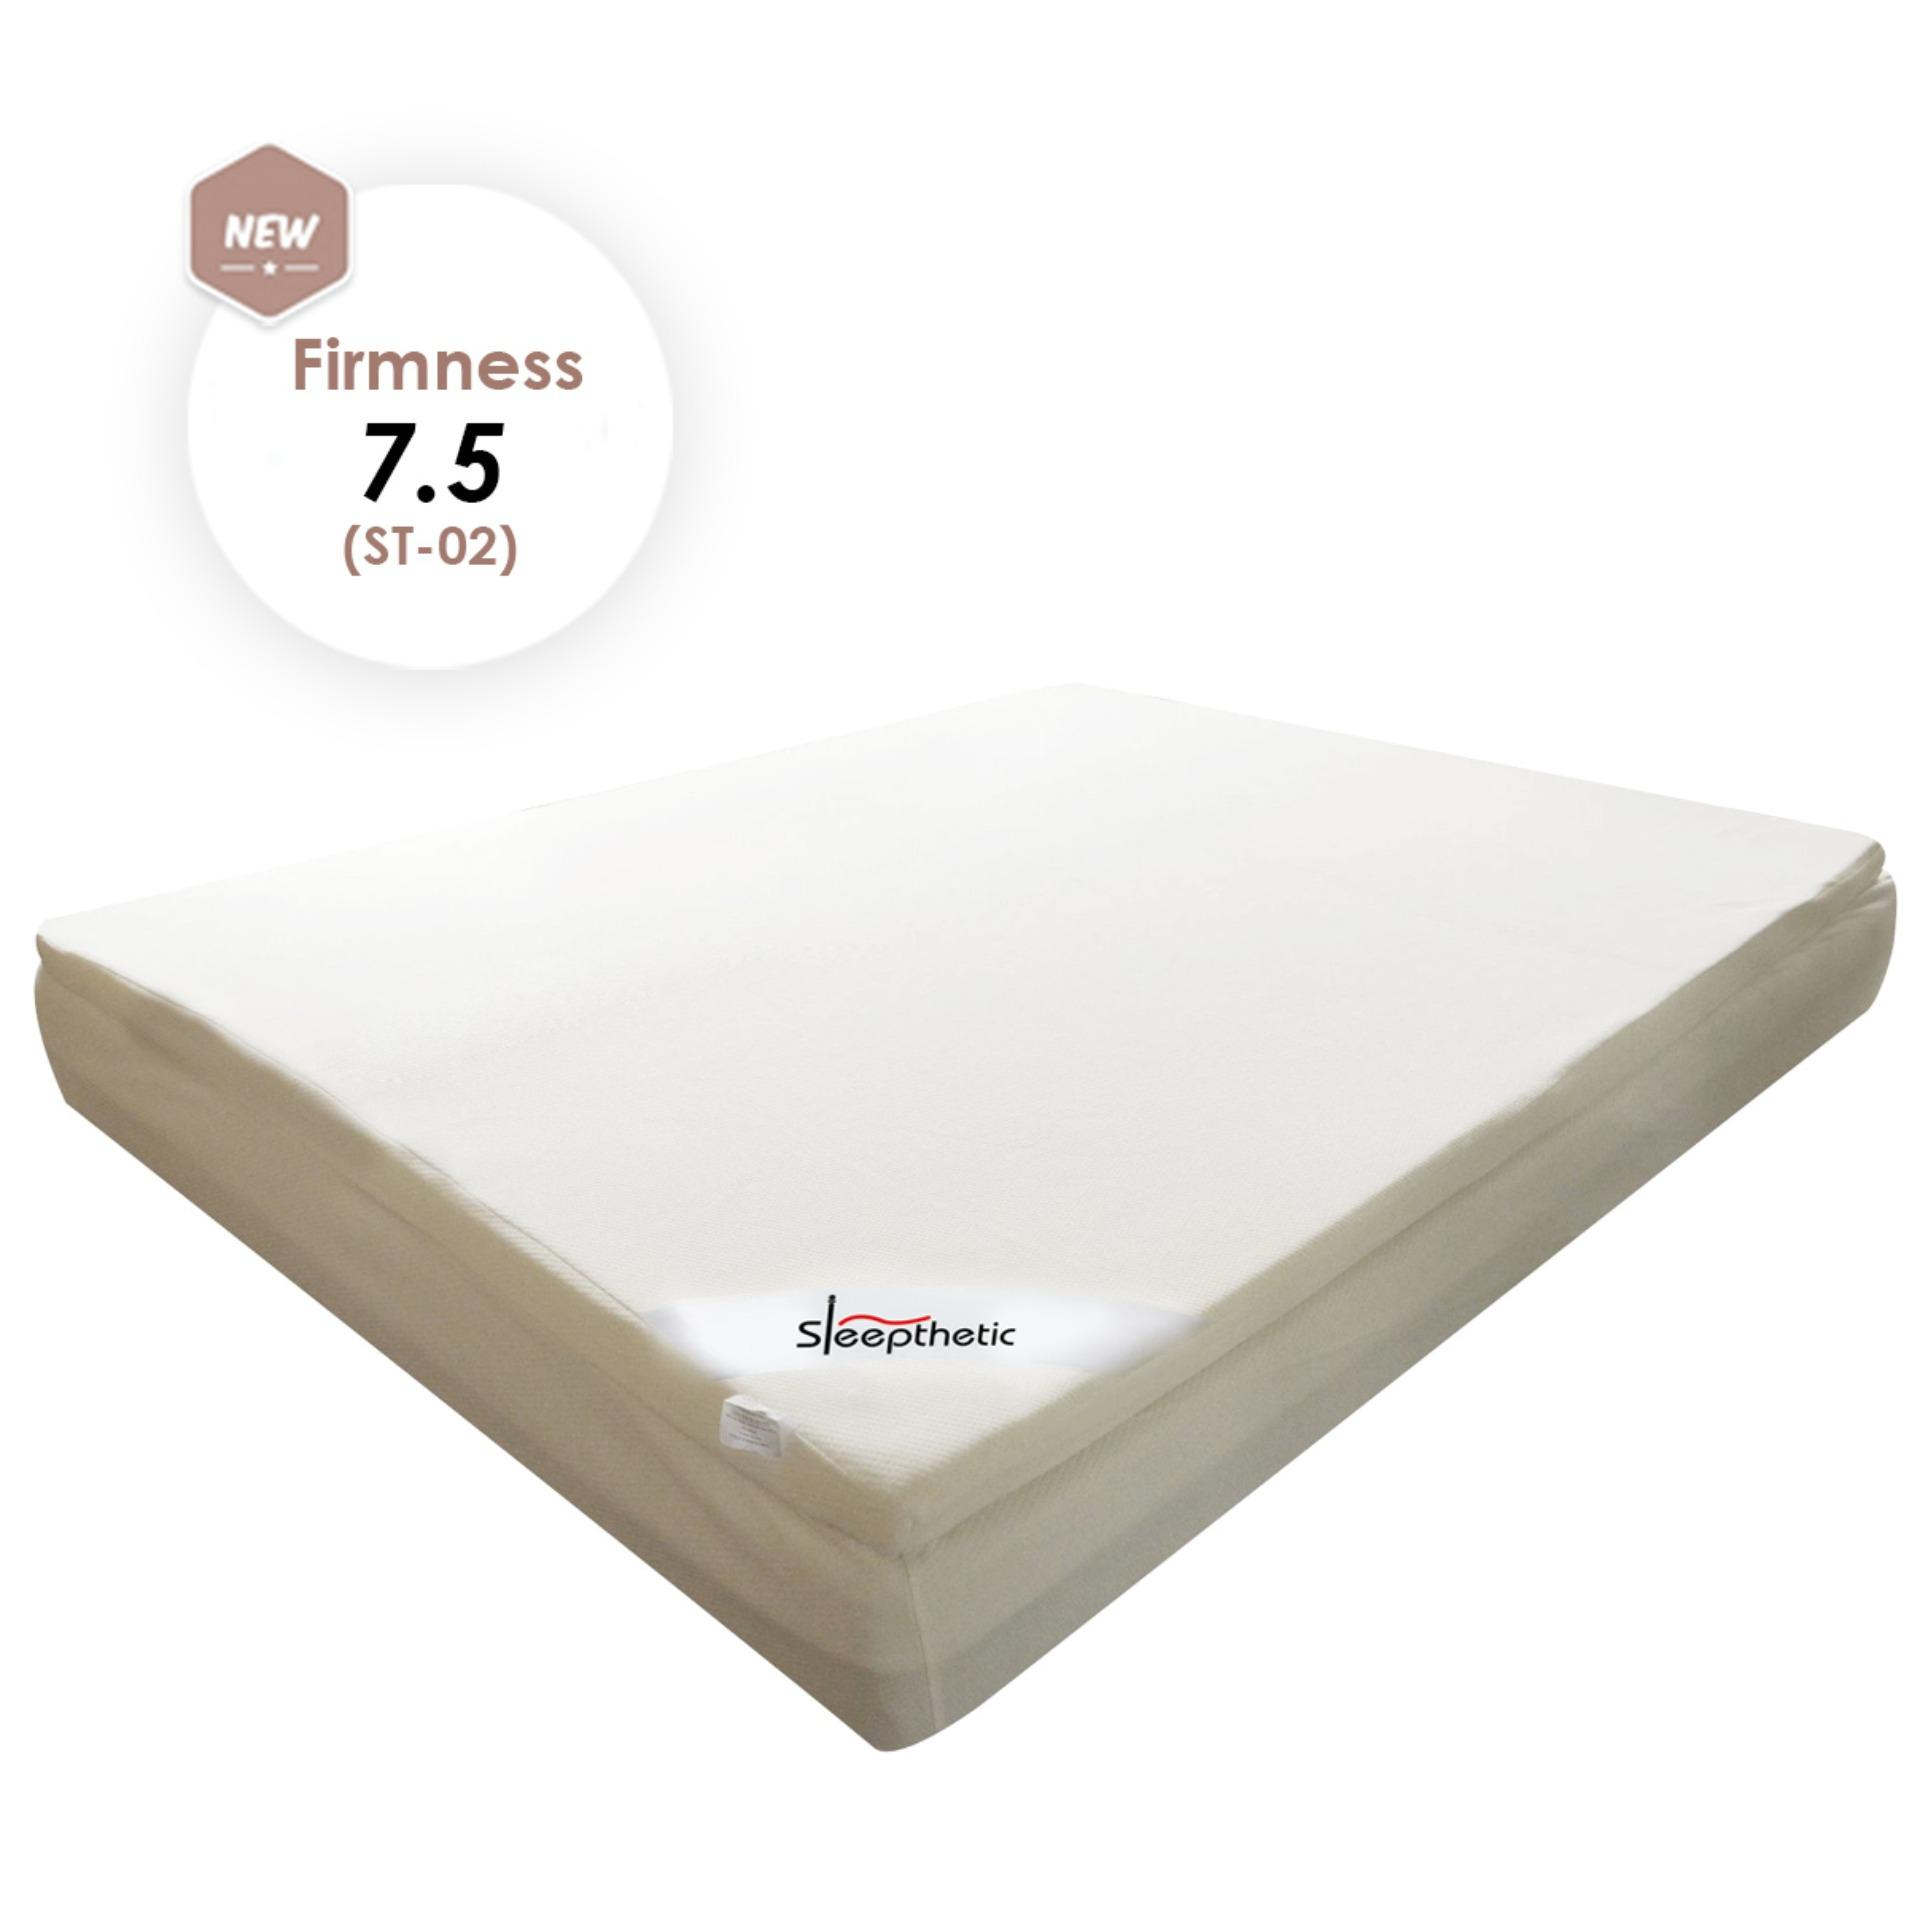 Sleepthetic™ Fitted Memory Foam Topper | Lazada Singapore